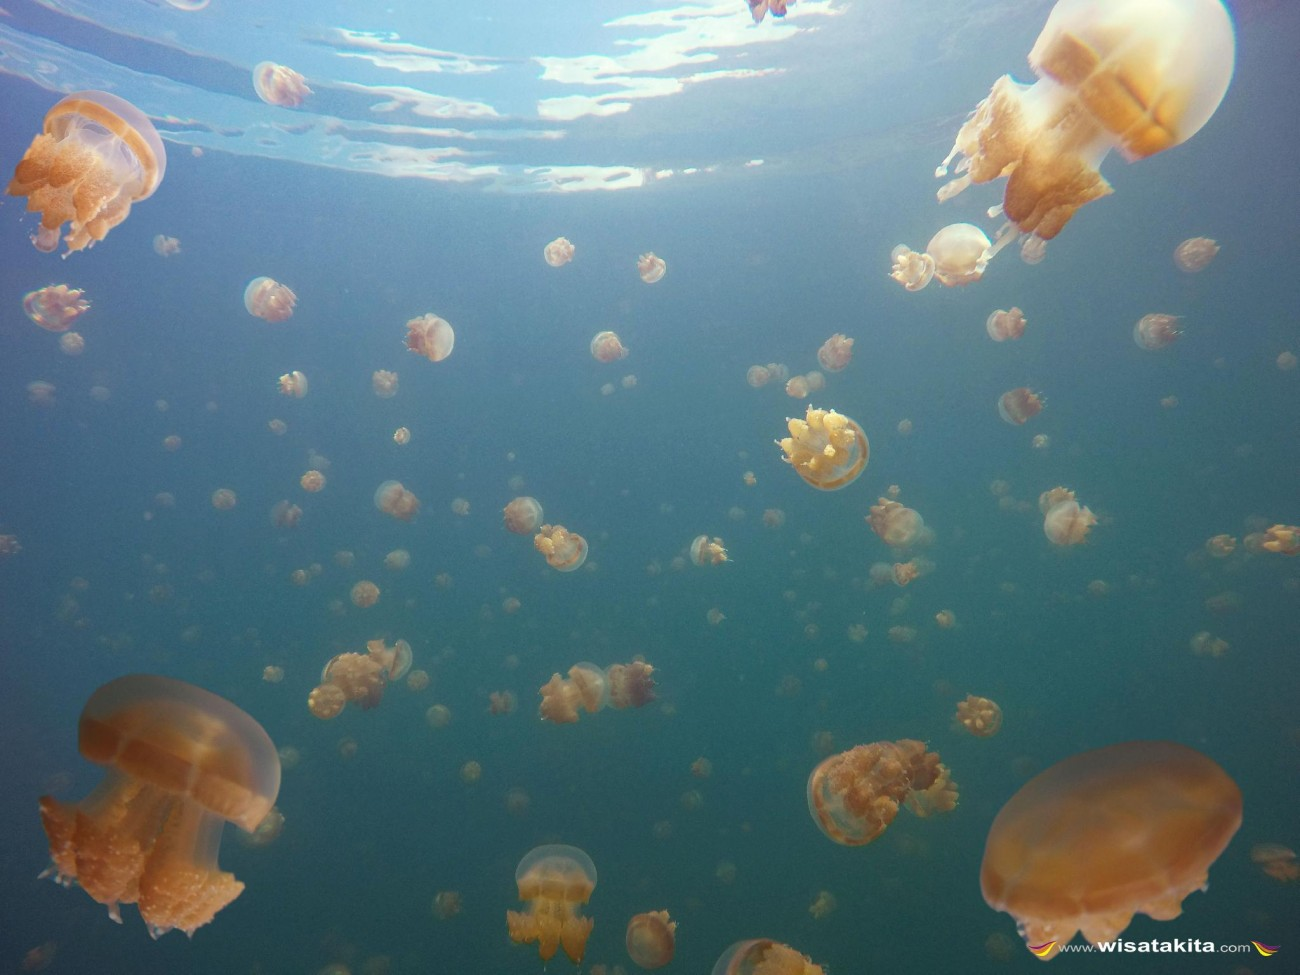 Stingless Jellyfish at Kakaban Lake